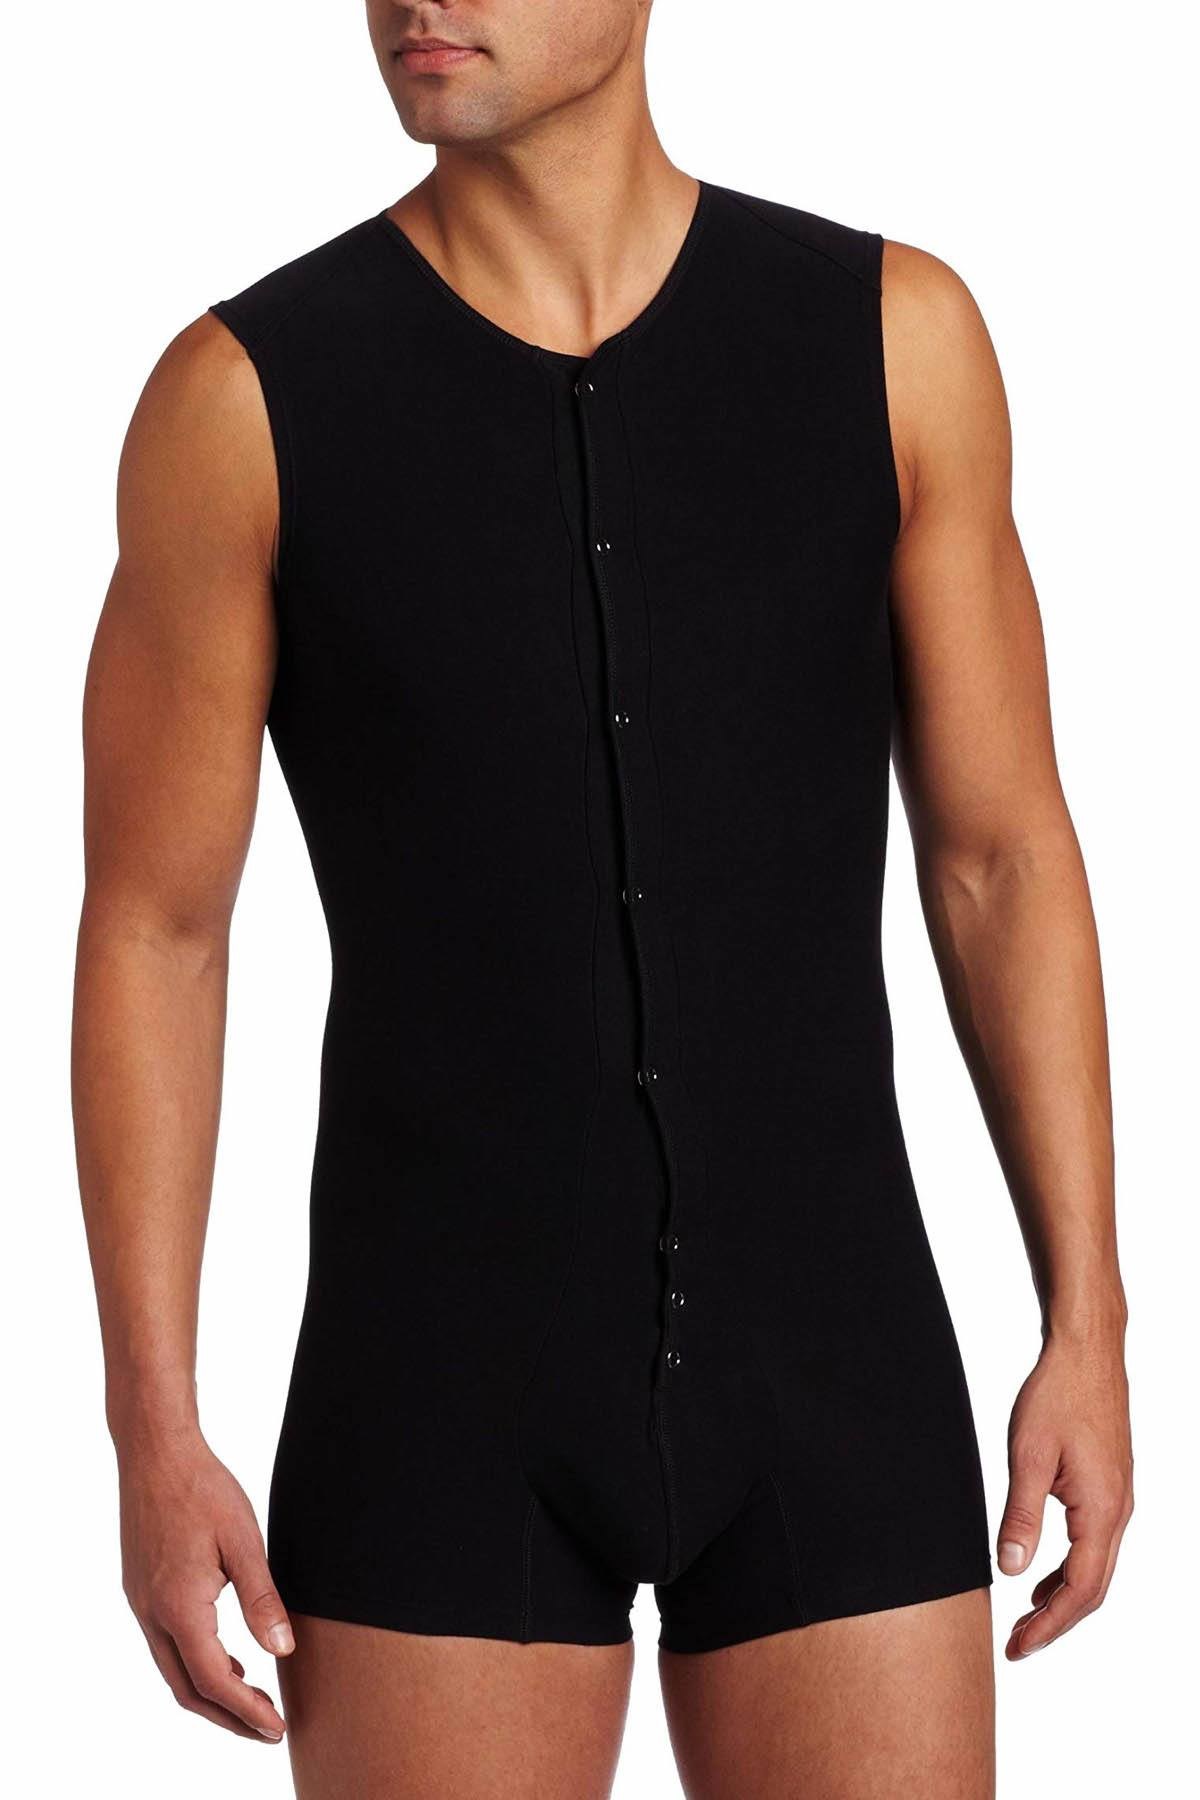 Unico Black Sleeveless Bodysuit